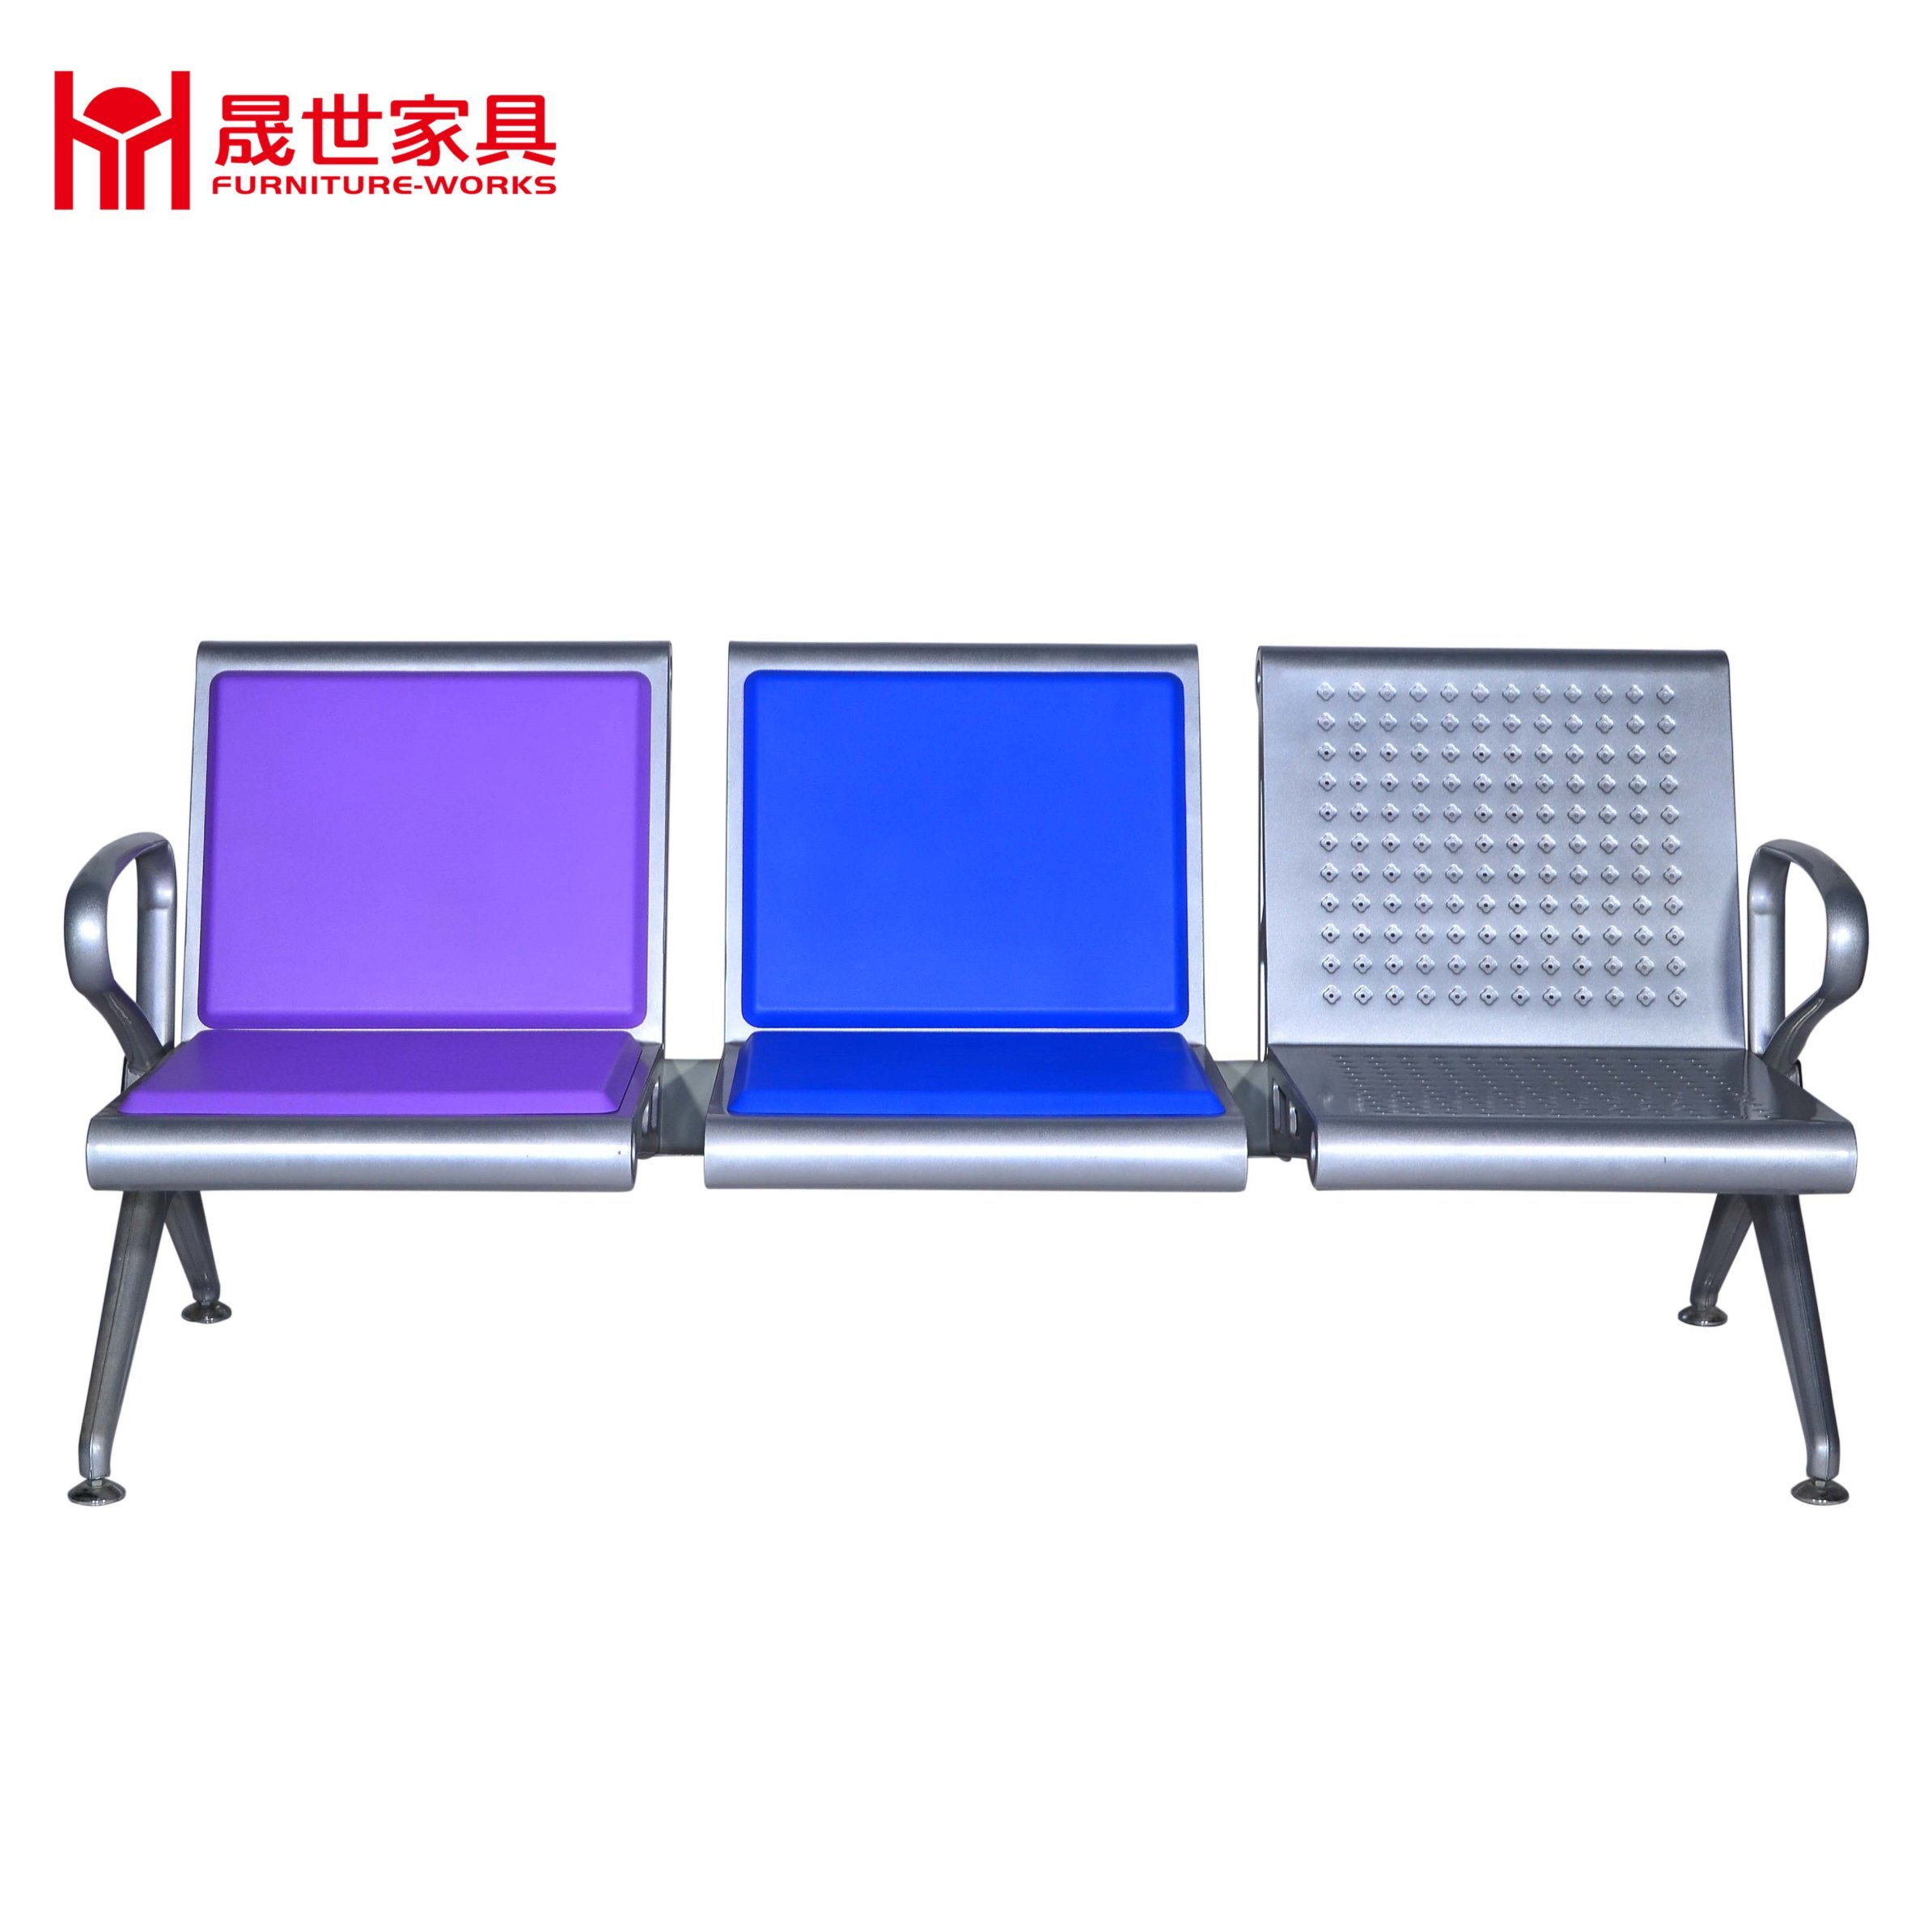 High Quality Bus Station/Airport/Hospital Metal Bench Airport Polyurethane PU Waiting Row Chair with 2.3.4.5 Seater